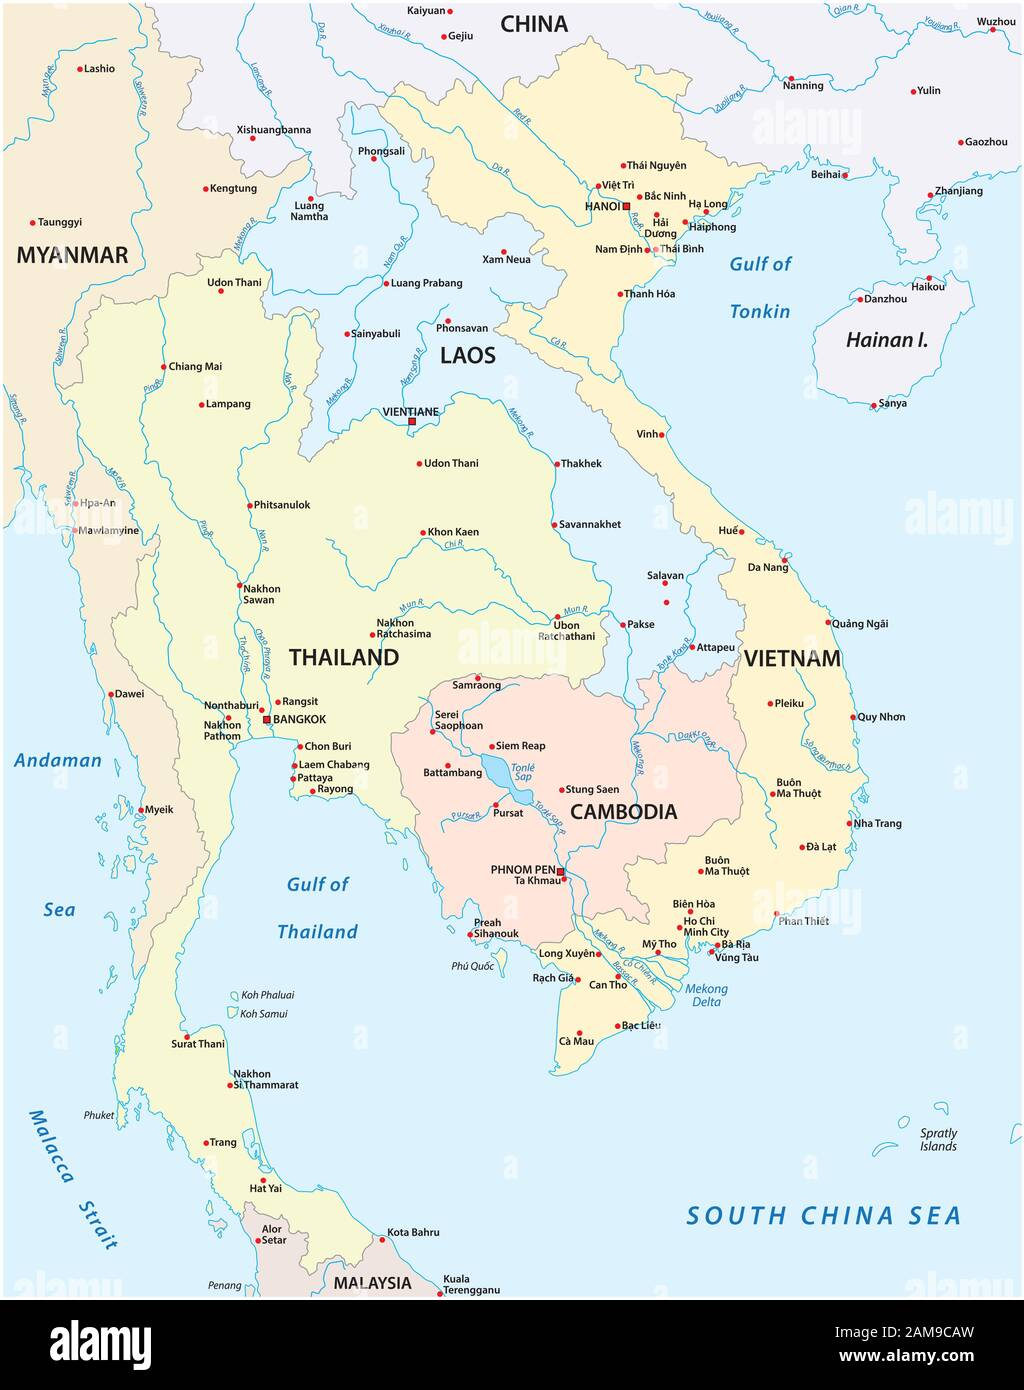 Map Of Cambodia Vietnam Thailand Laos High Resolution Stock Photography And Images Alamy